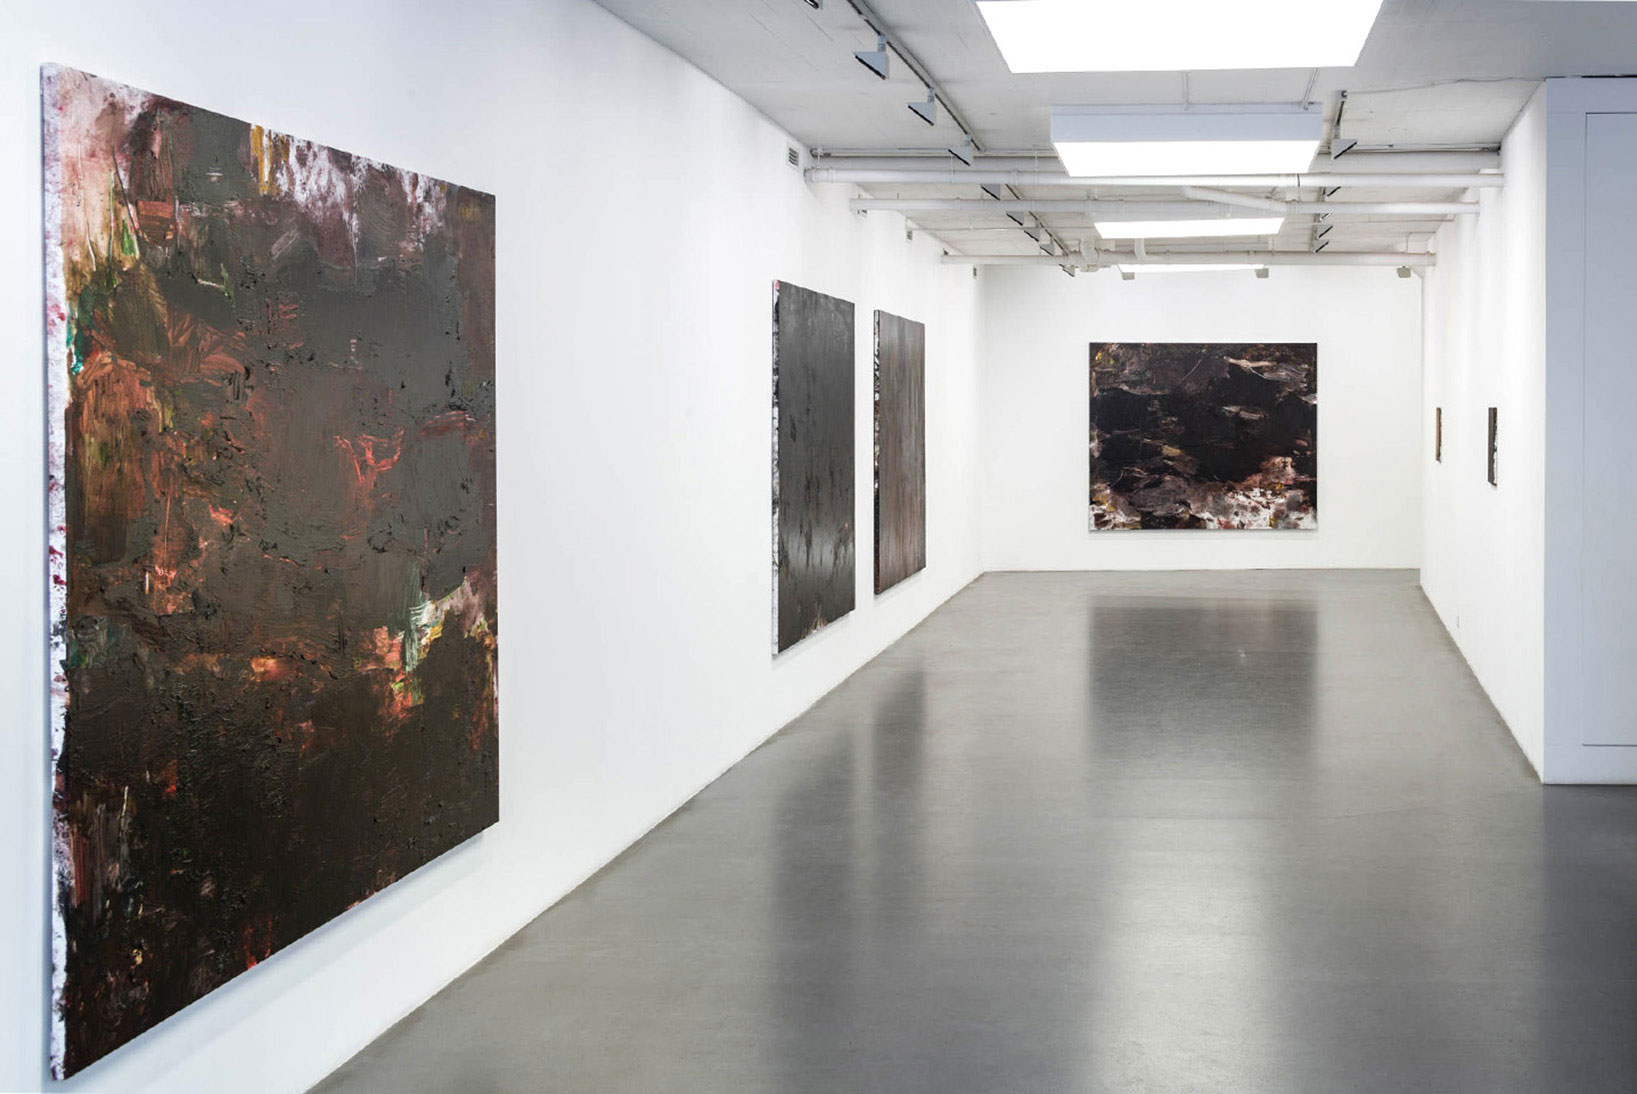 Julia Selin, Installation view, 2014, Galleri Flach